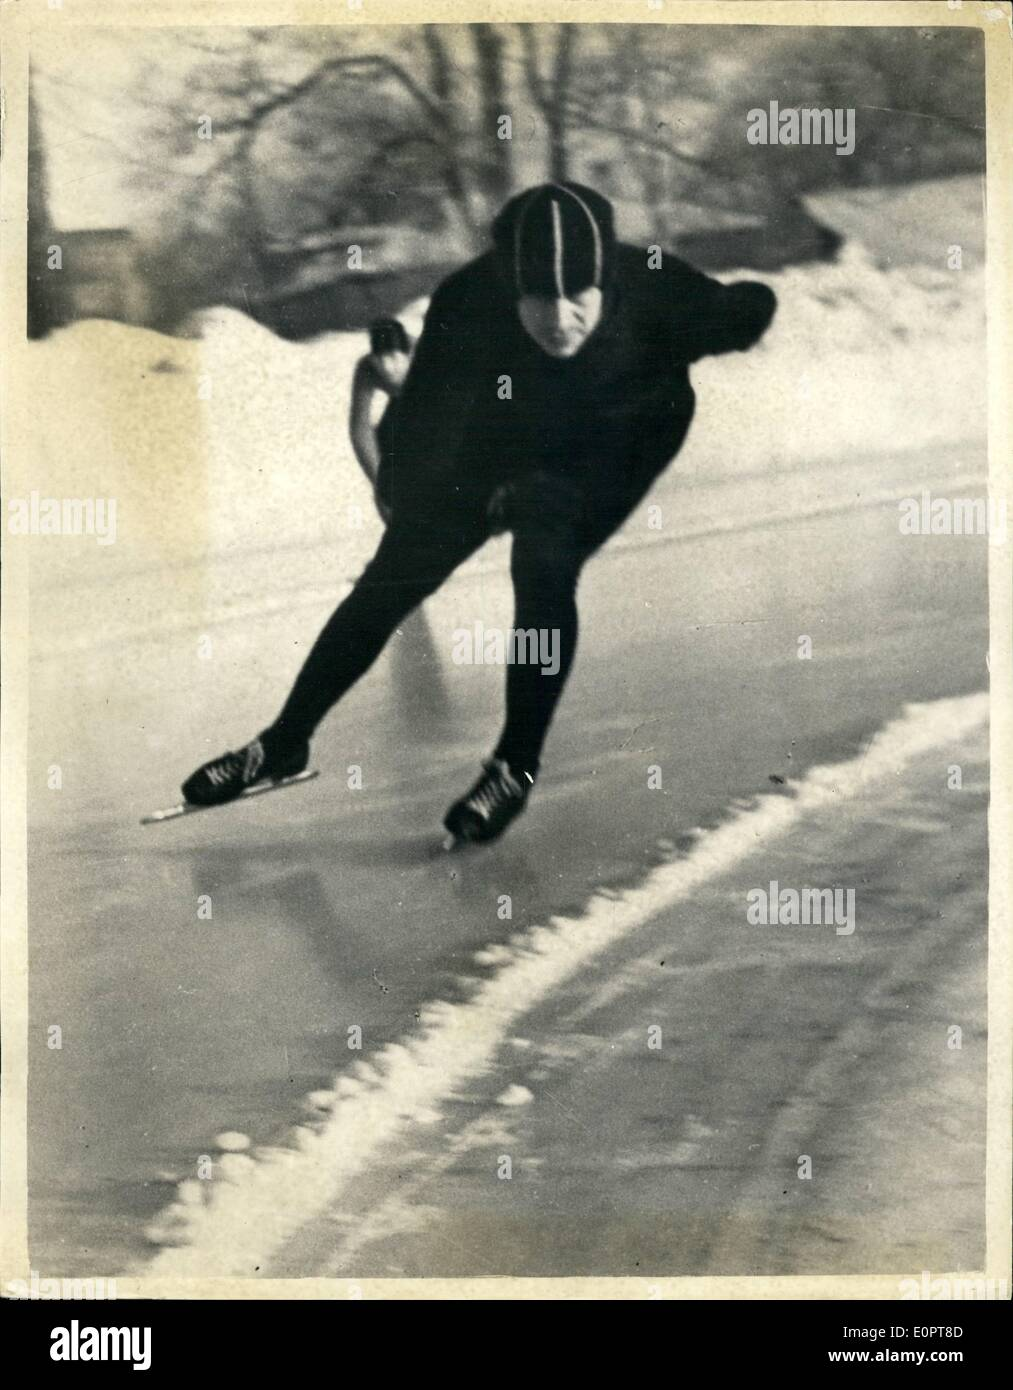 Dec. 12, 1956 - 12-1-56 Soviet skaters prepare for Winter Olympics. Keystone Photo Shows: Russian speed skater, Boris Shilkov, world champion seen at speed whilst practicing for the Winter Olympic Games. - Stock Image